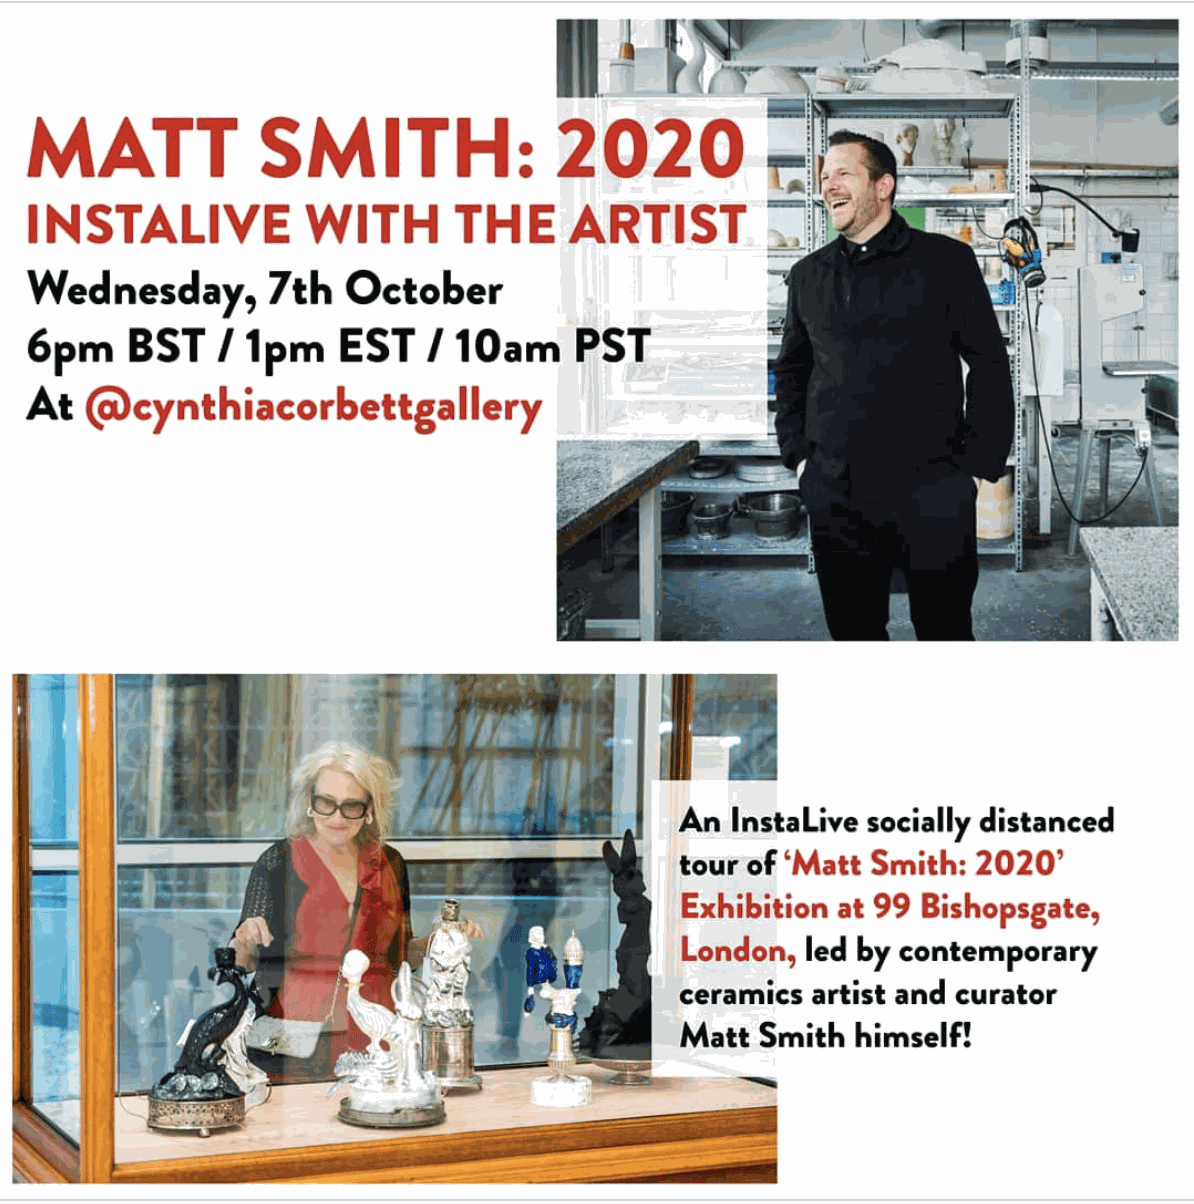 WATCH MATT SMITH: 2020 INSTALIVE WITH THE ARTIST